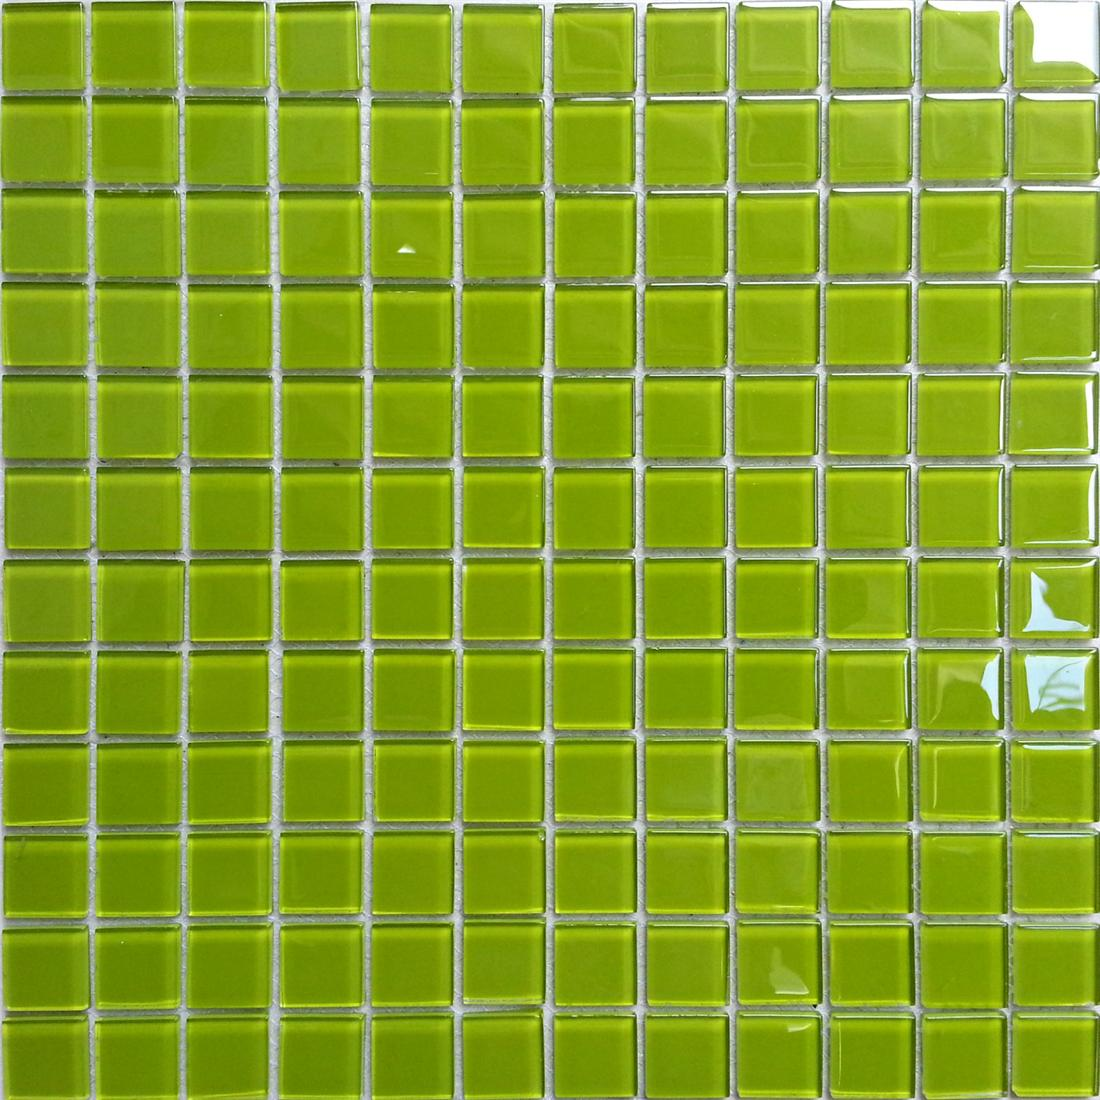 Greens - Mosaic Tile - Tile - The Home Depot